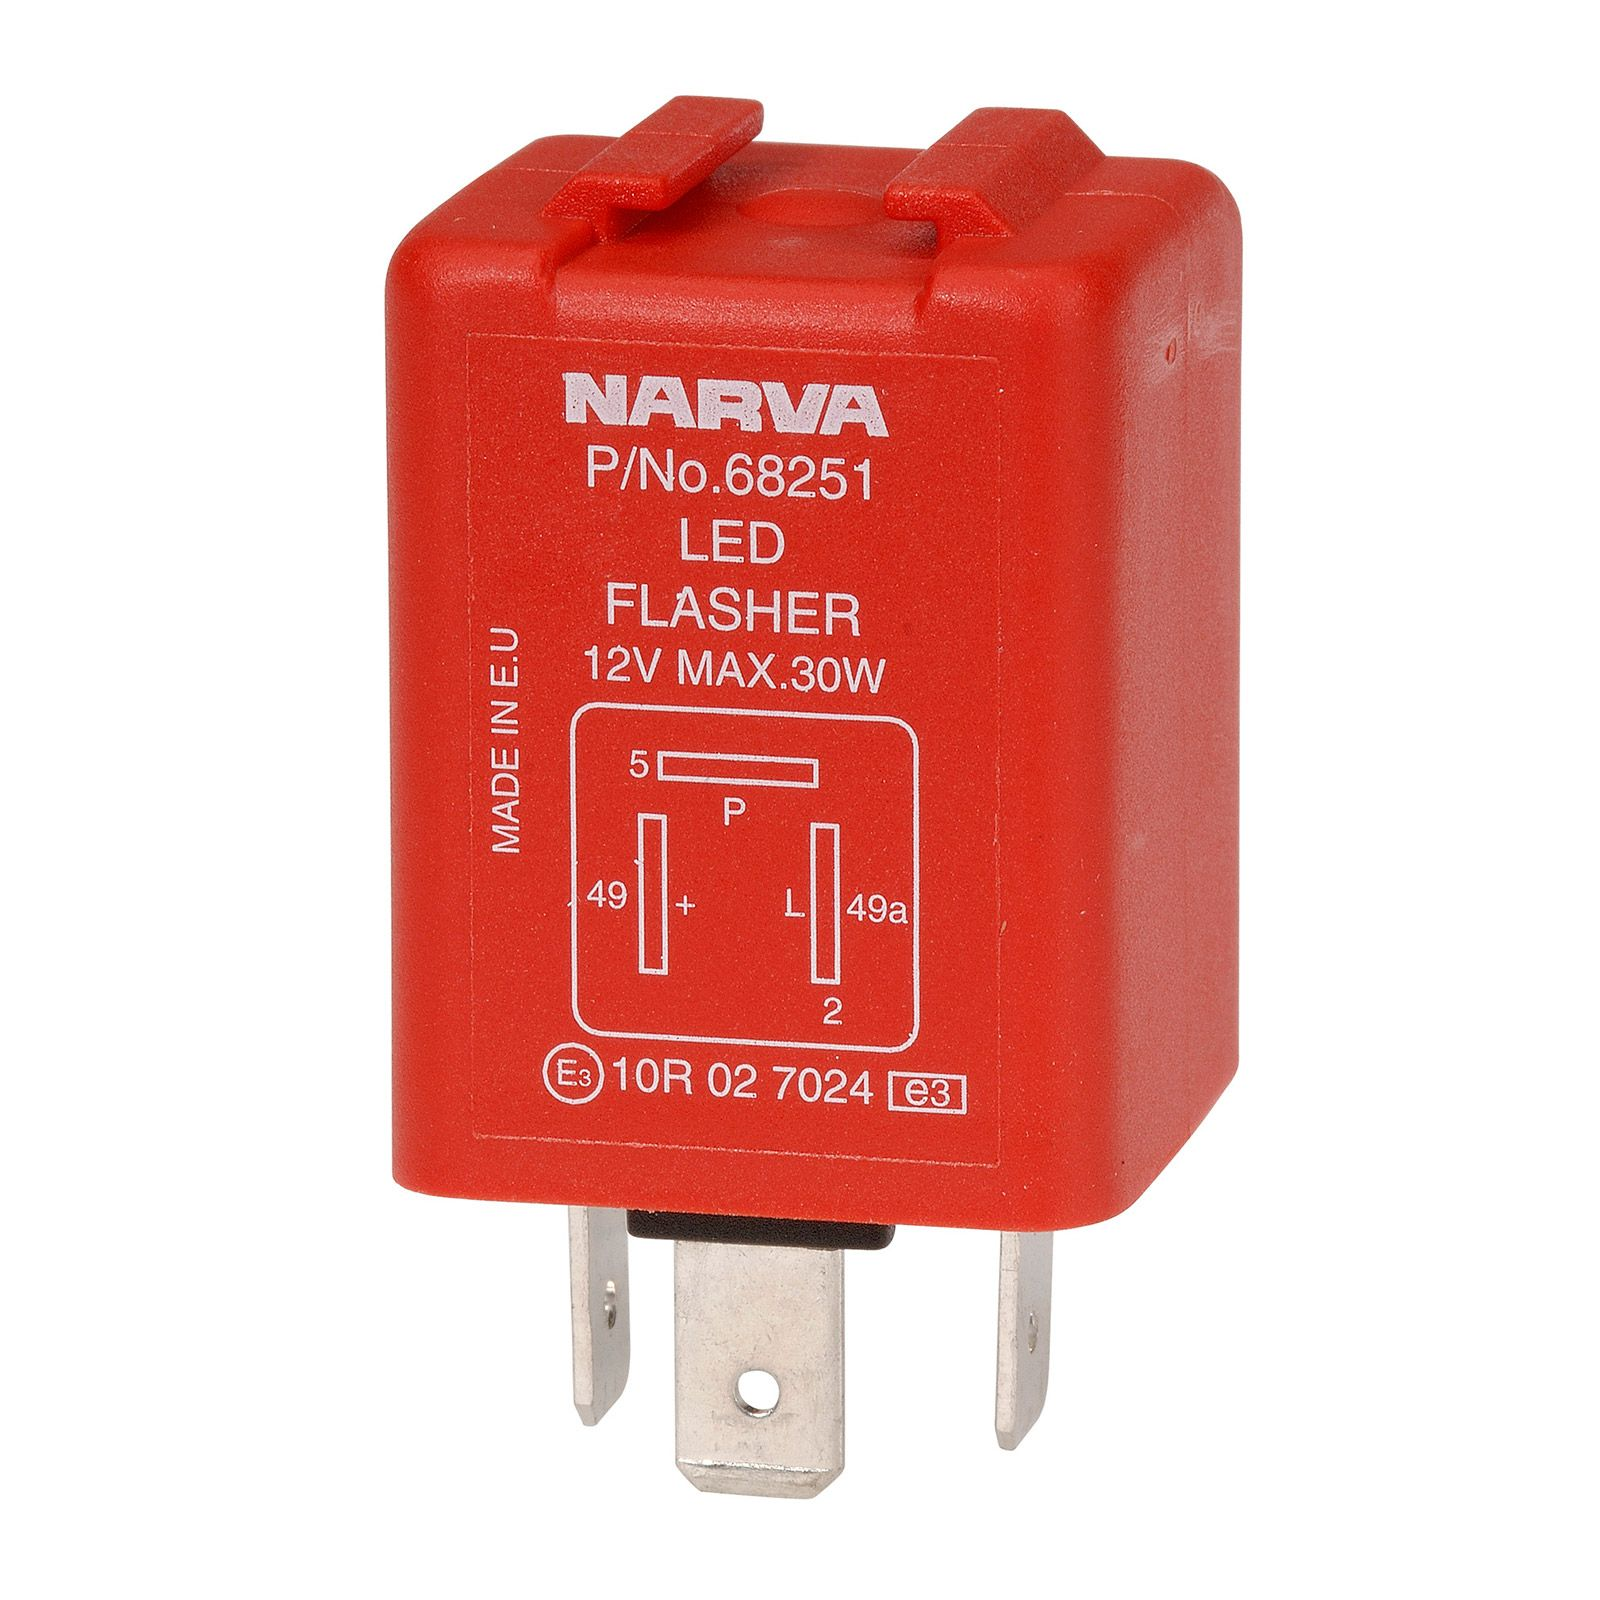 Narva | 12 Volt 3 Pin LED Electronic Flasher with Pilot on